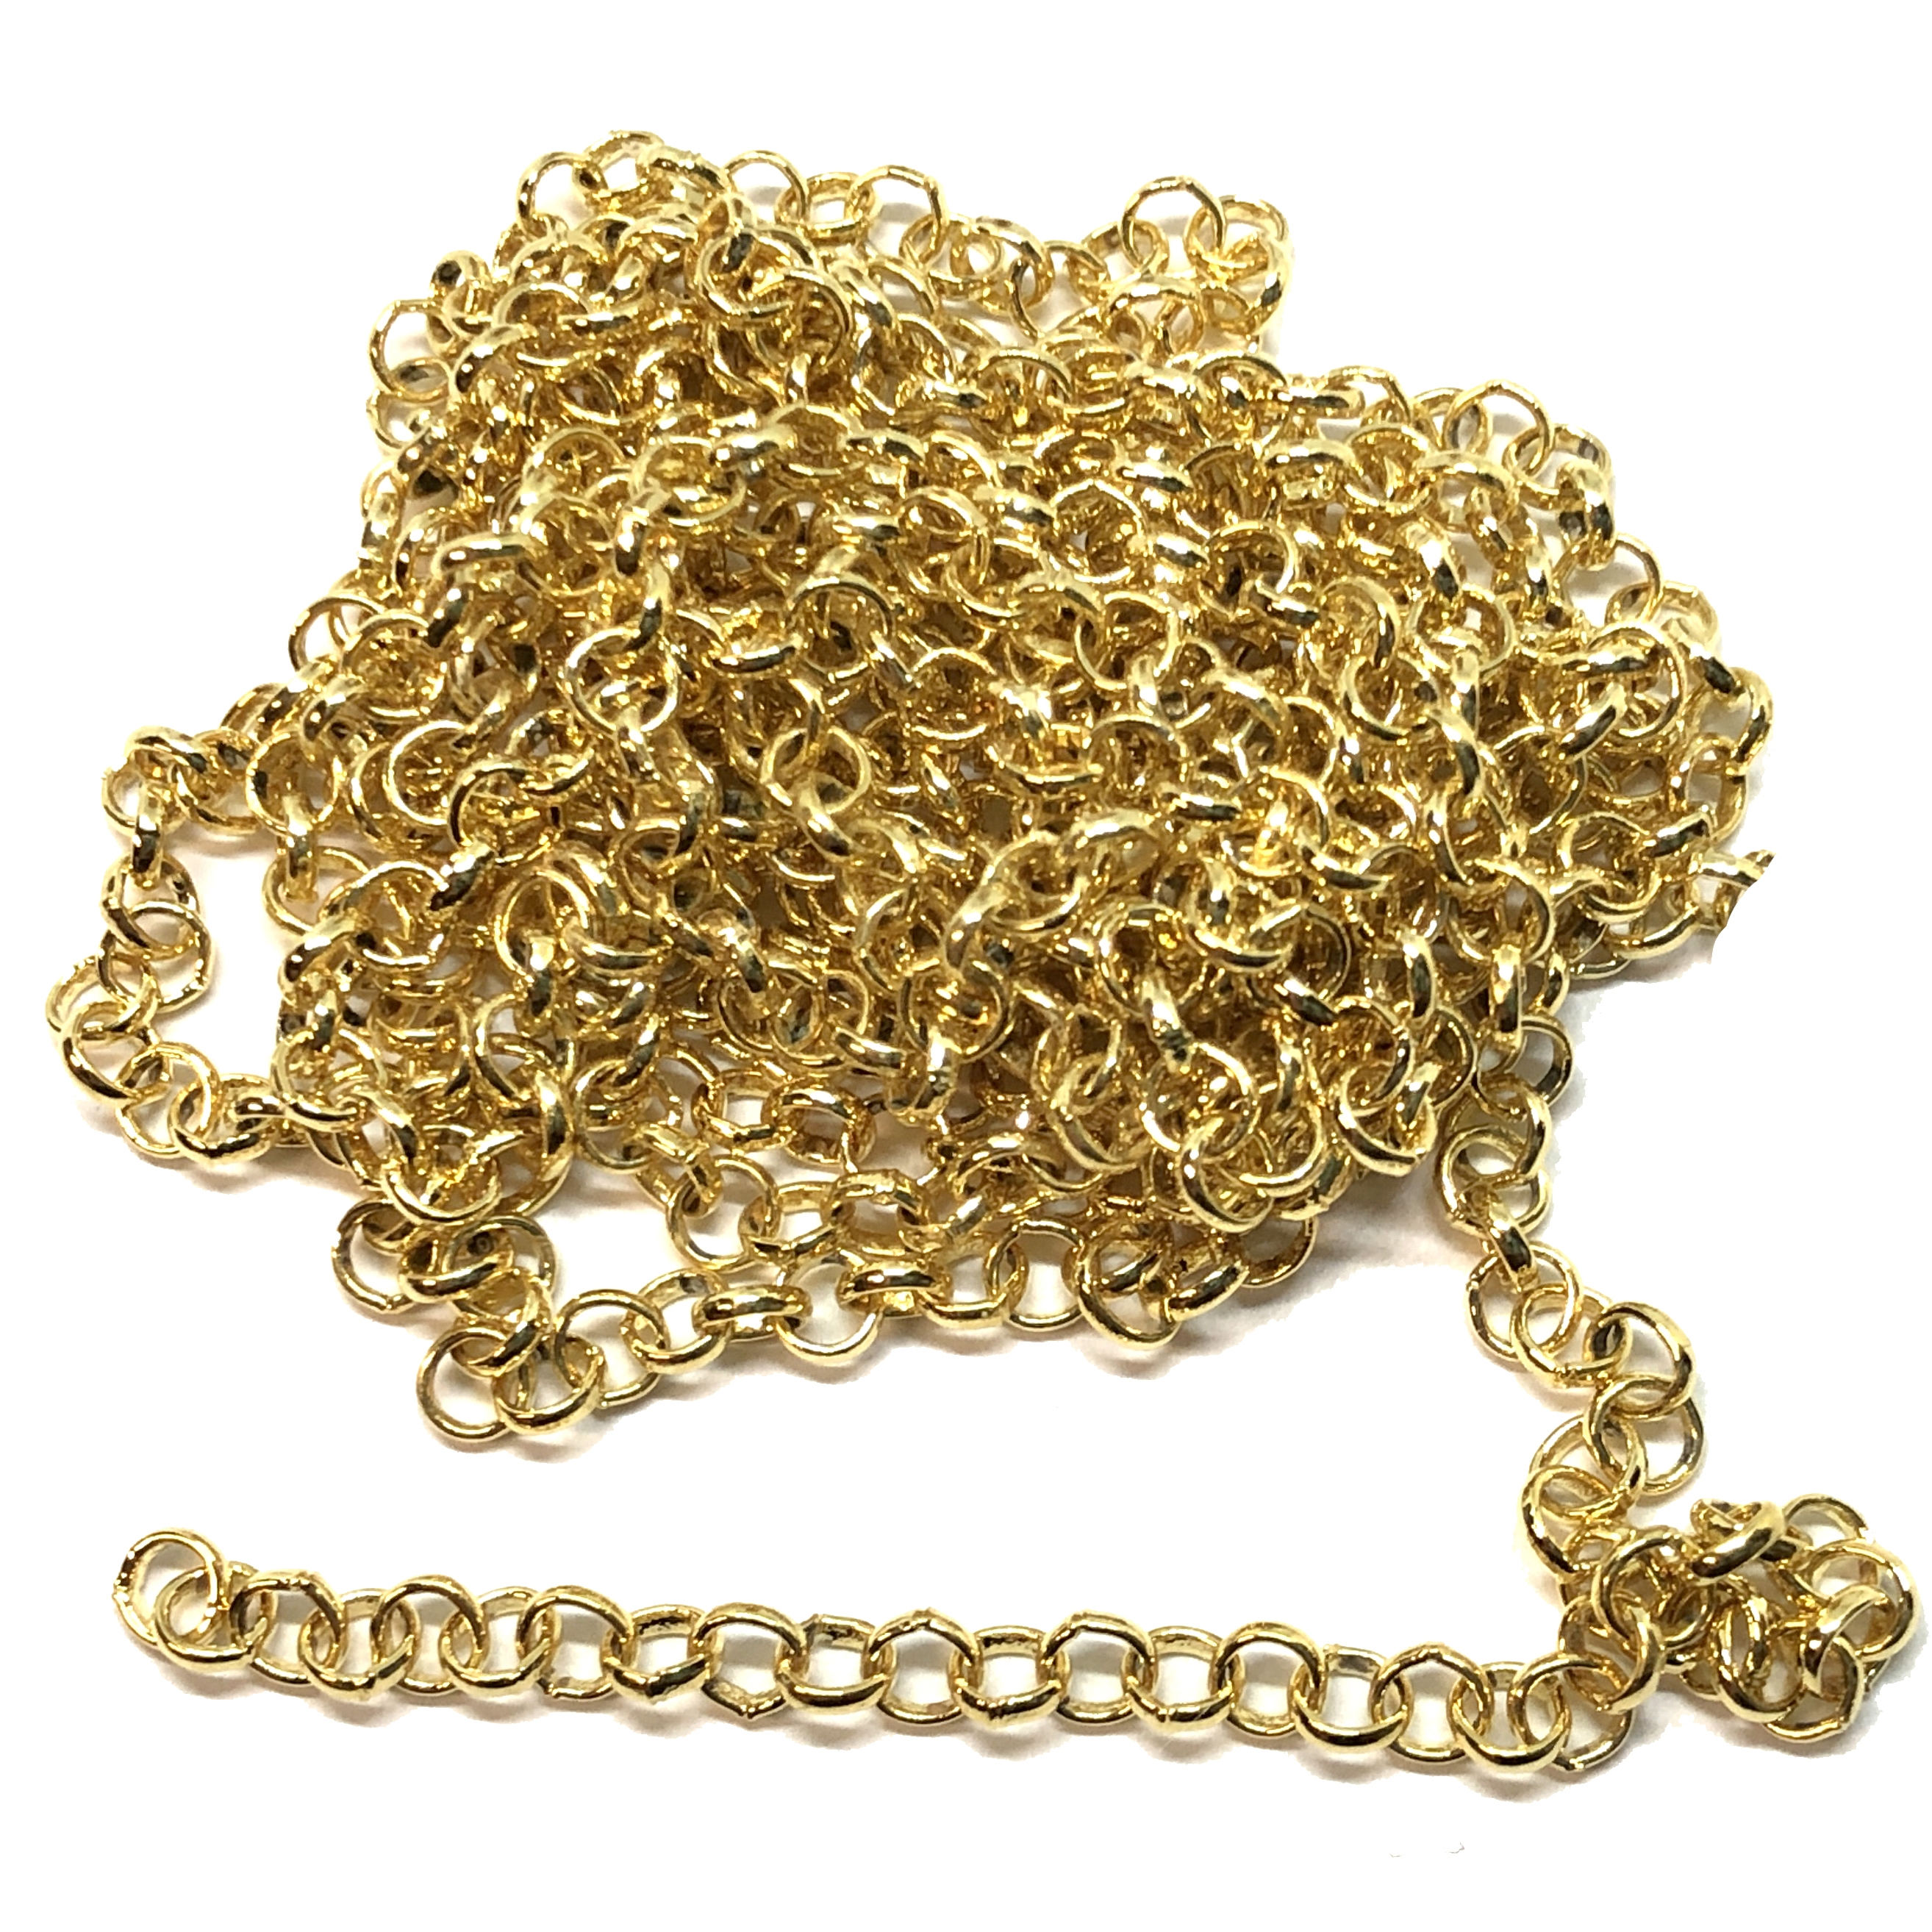 brass chain, jewelry chain, rolo chain, 02623, satin matte gold rolo chain, B'sue Boutiques, nickel free chain, US Made chain,vintage jewellery supplies, jewelry making supplies, bracelet chain, necklace chain, antique gold